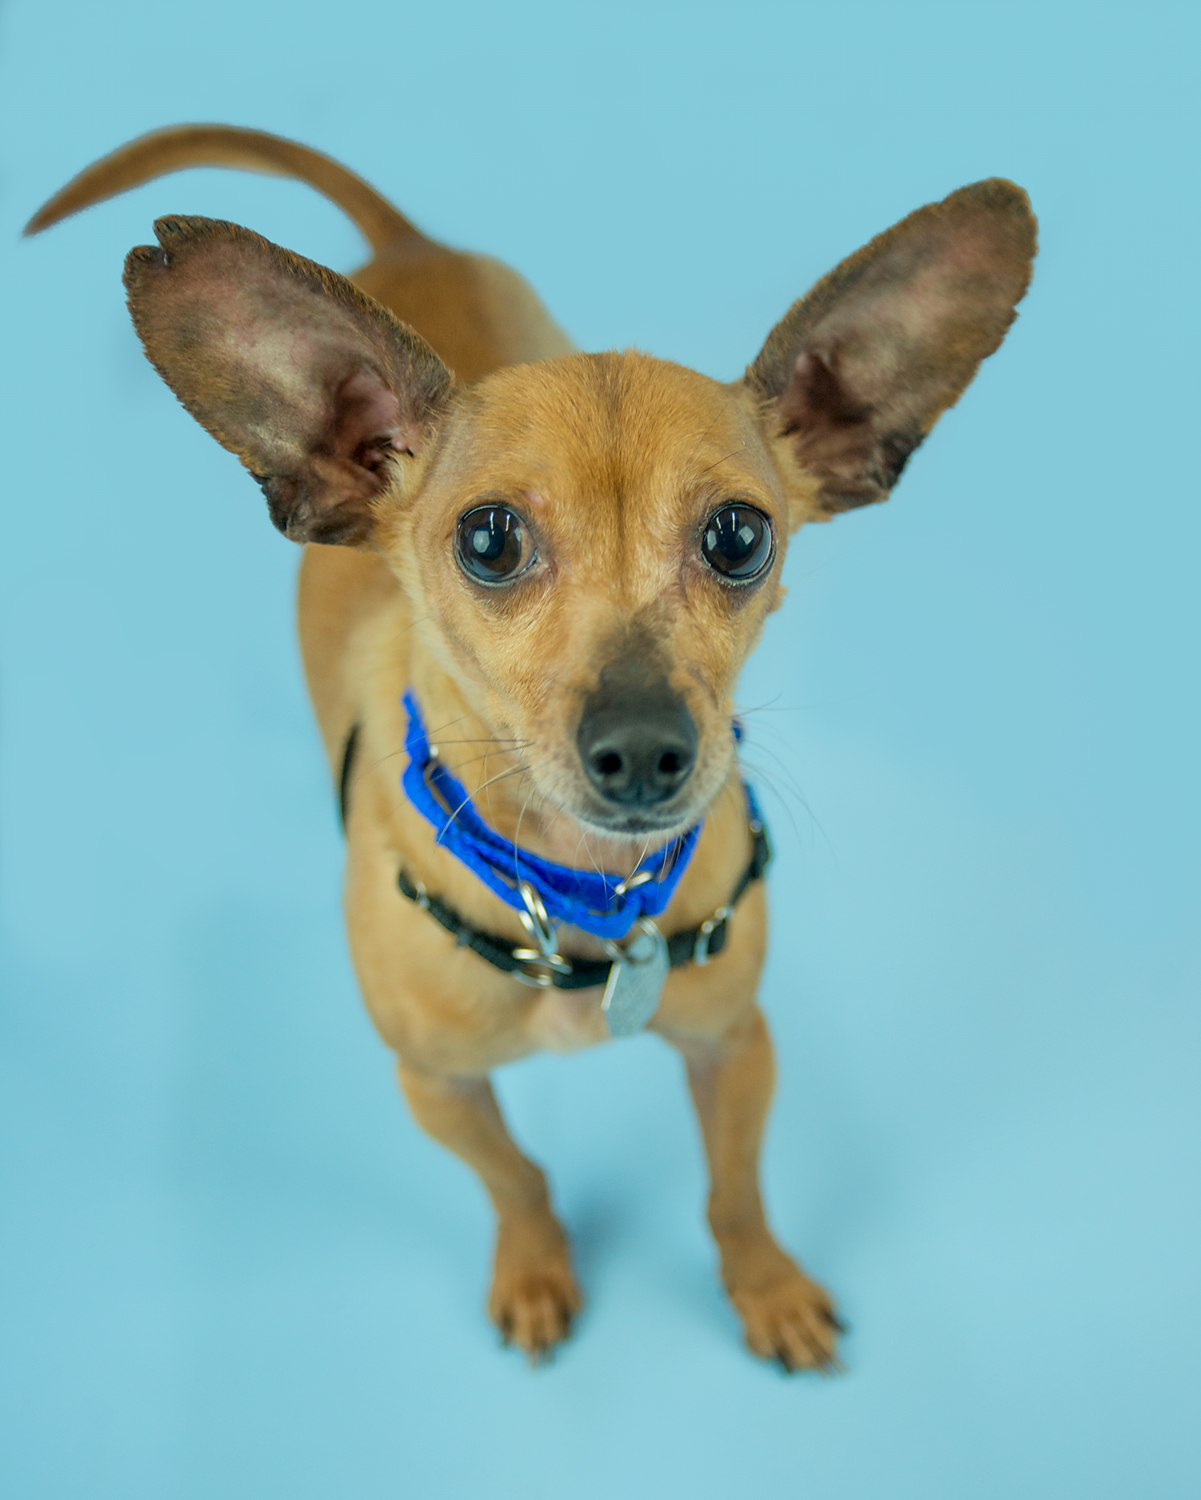 Hi there, I'm Hector – an adorable five year old Chihuahua miniature dachshund mix with big ears to match my larger than life personality! I'd love to join my new family in daily exercise activities, play time, and after all that – snuggling on the couch. Due to my preference for my own space during playtime and meal time, an adult only home will help me thrive! Did I mention I like to chat too? I might be the best friend you've been waiting for!<p></p>